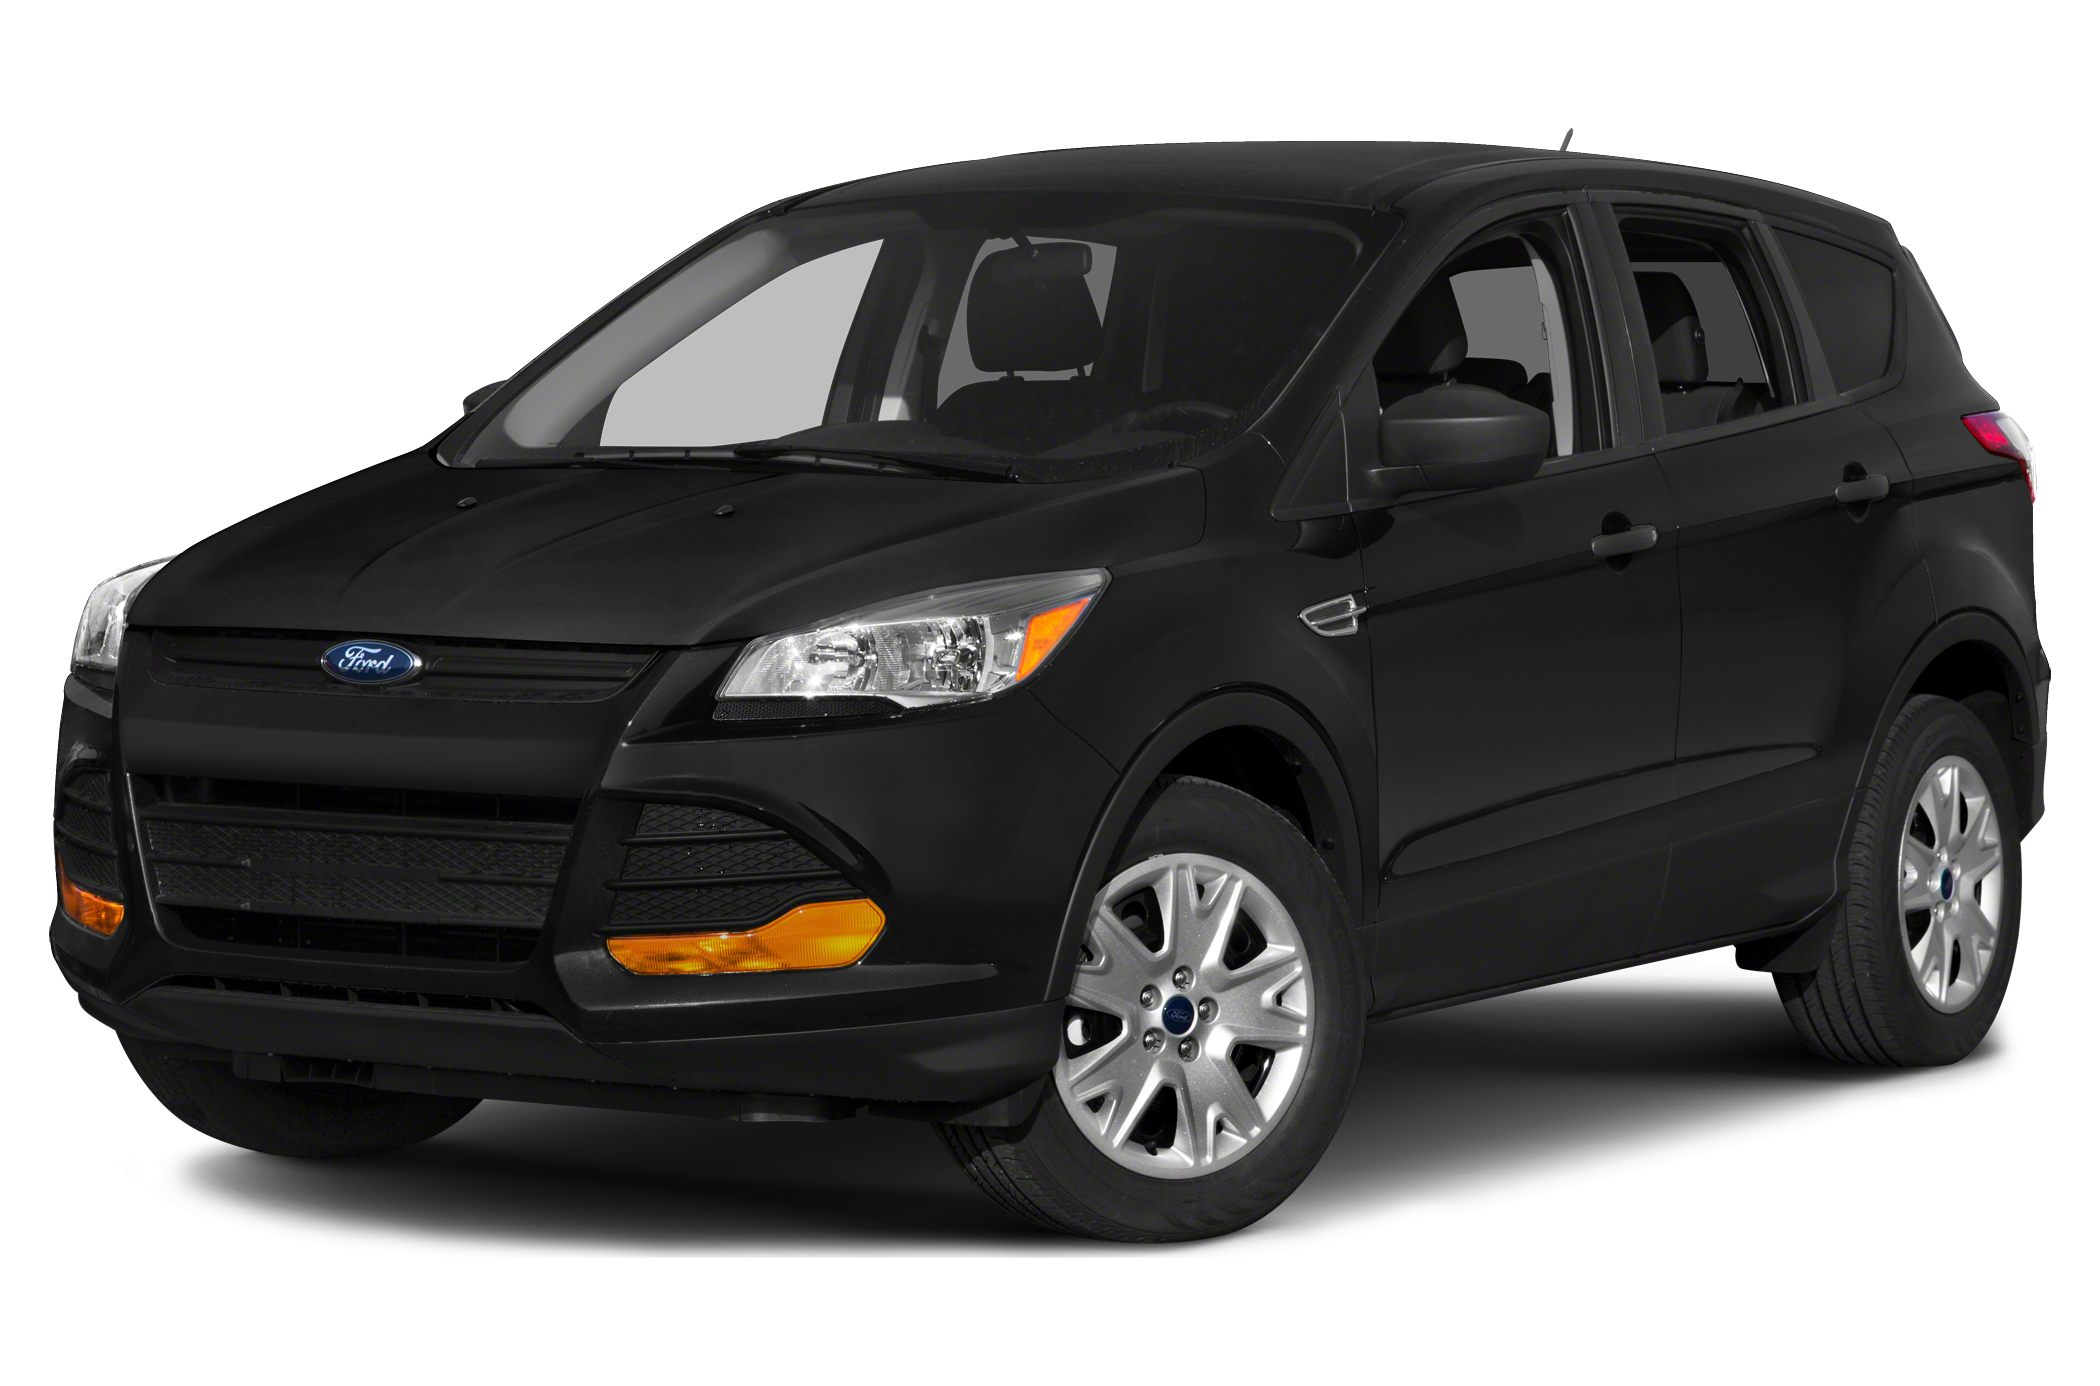 2015 Ford Escape S SUV for sale in Owensboro for $21,355 with 0 miles